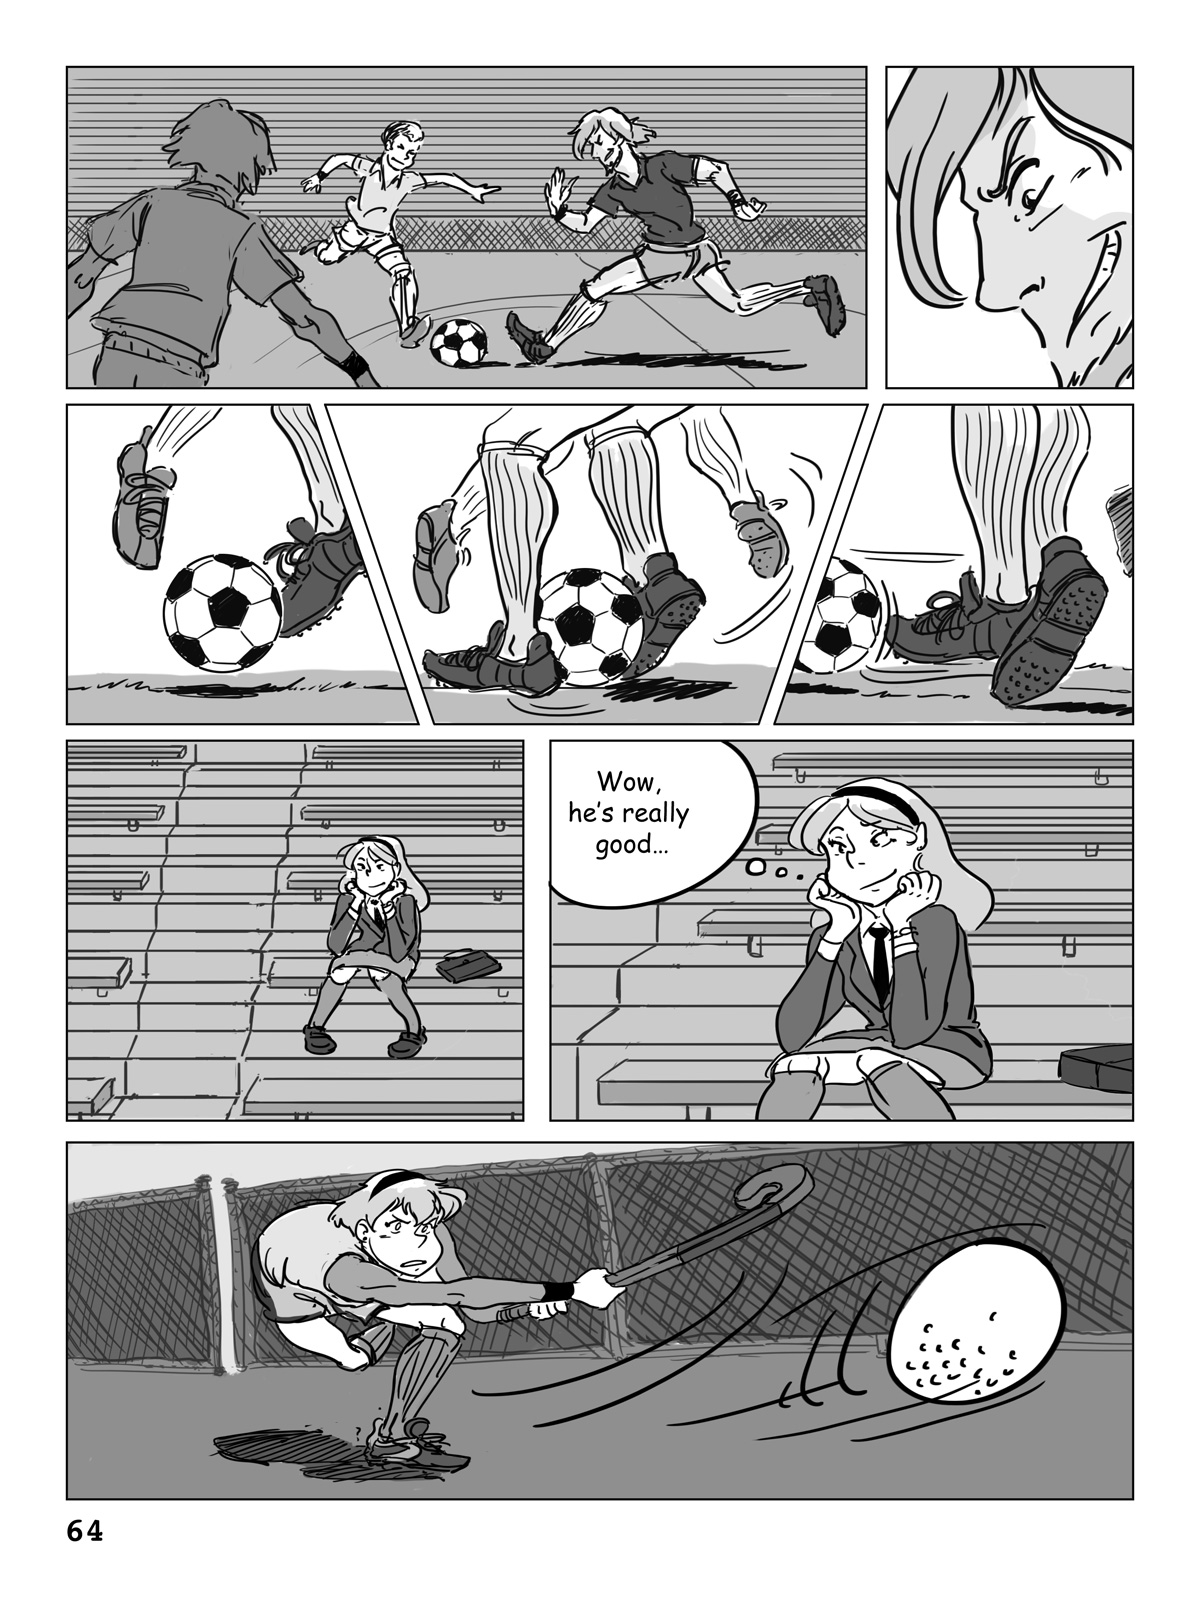 Hockey, Love, & GUTS! – Chapter 4 – Page 64